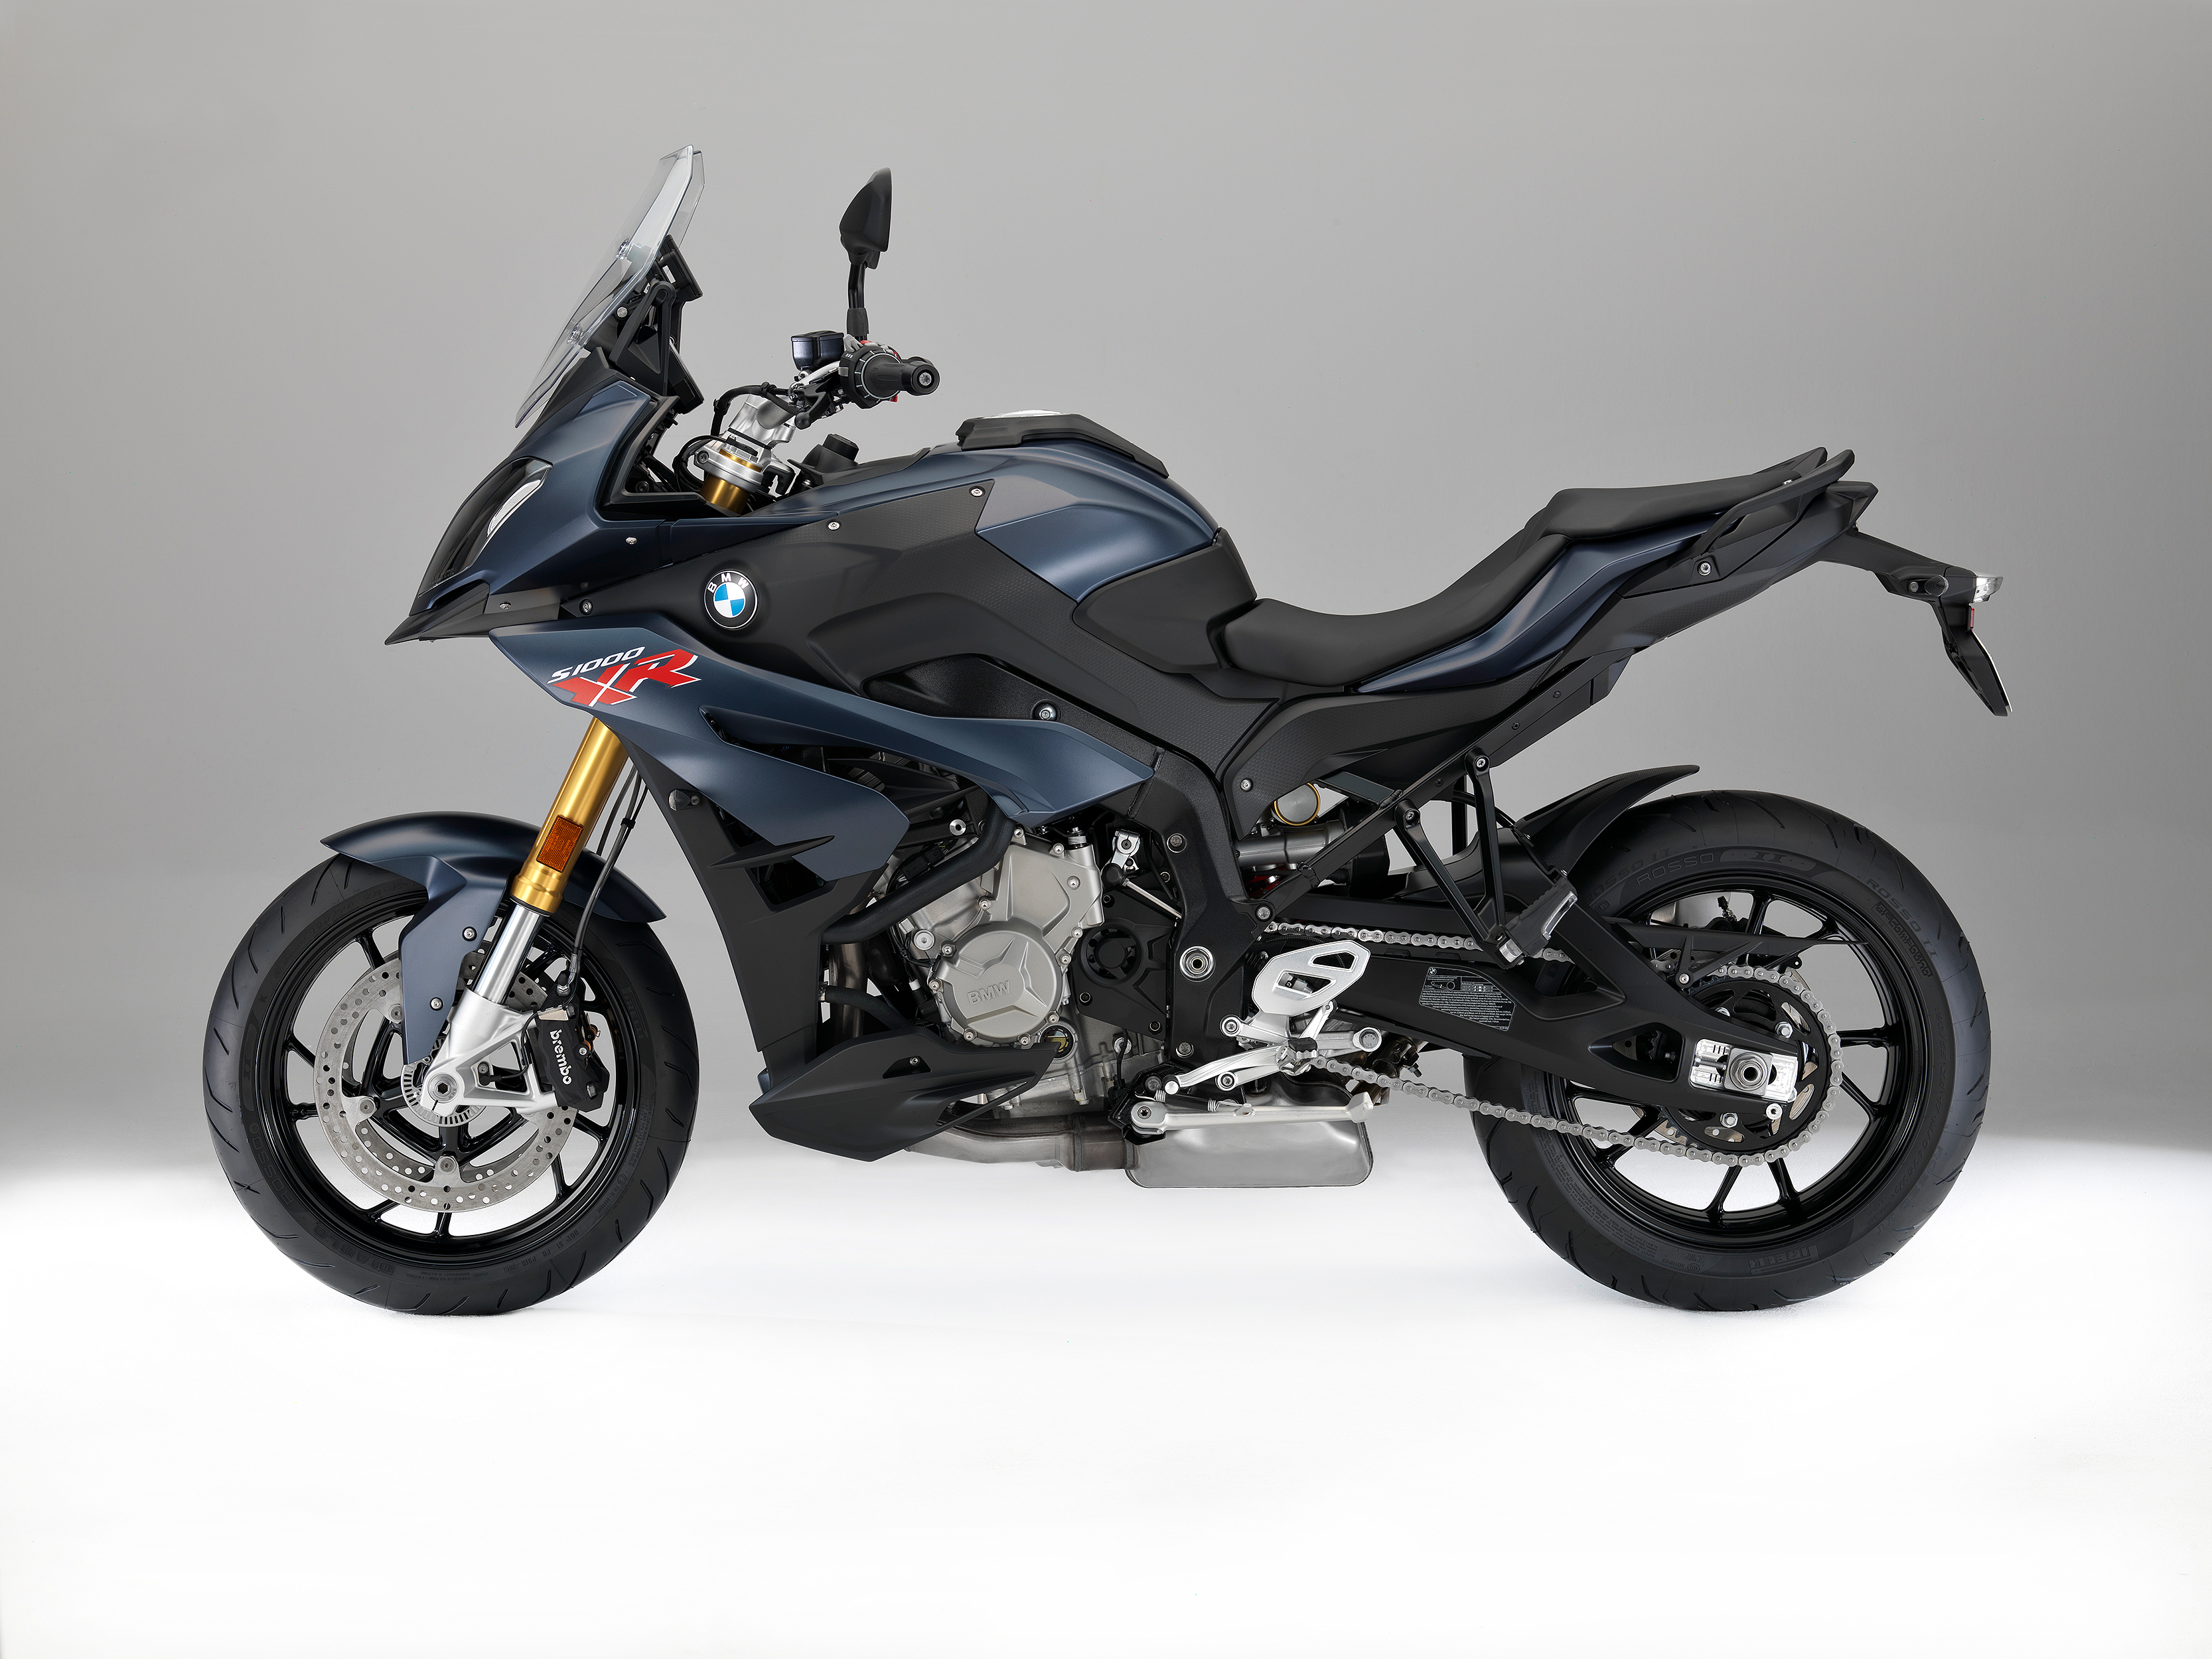 bmw s 1000 rr hp4 race bmw g 310 gs and bmw s 1000 xr launched at the malaysian motogp 2017. Black Bedroom Furniture Sets. Home Design Ideas